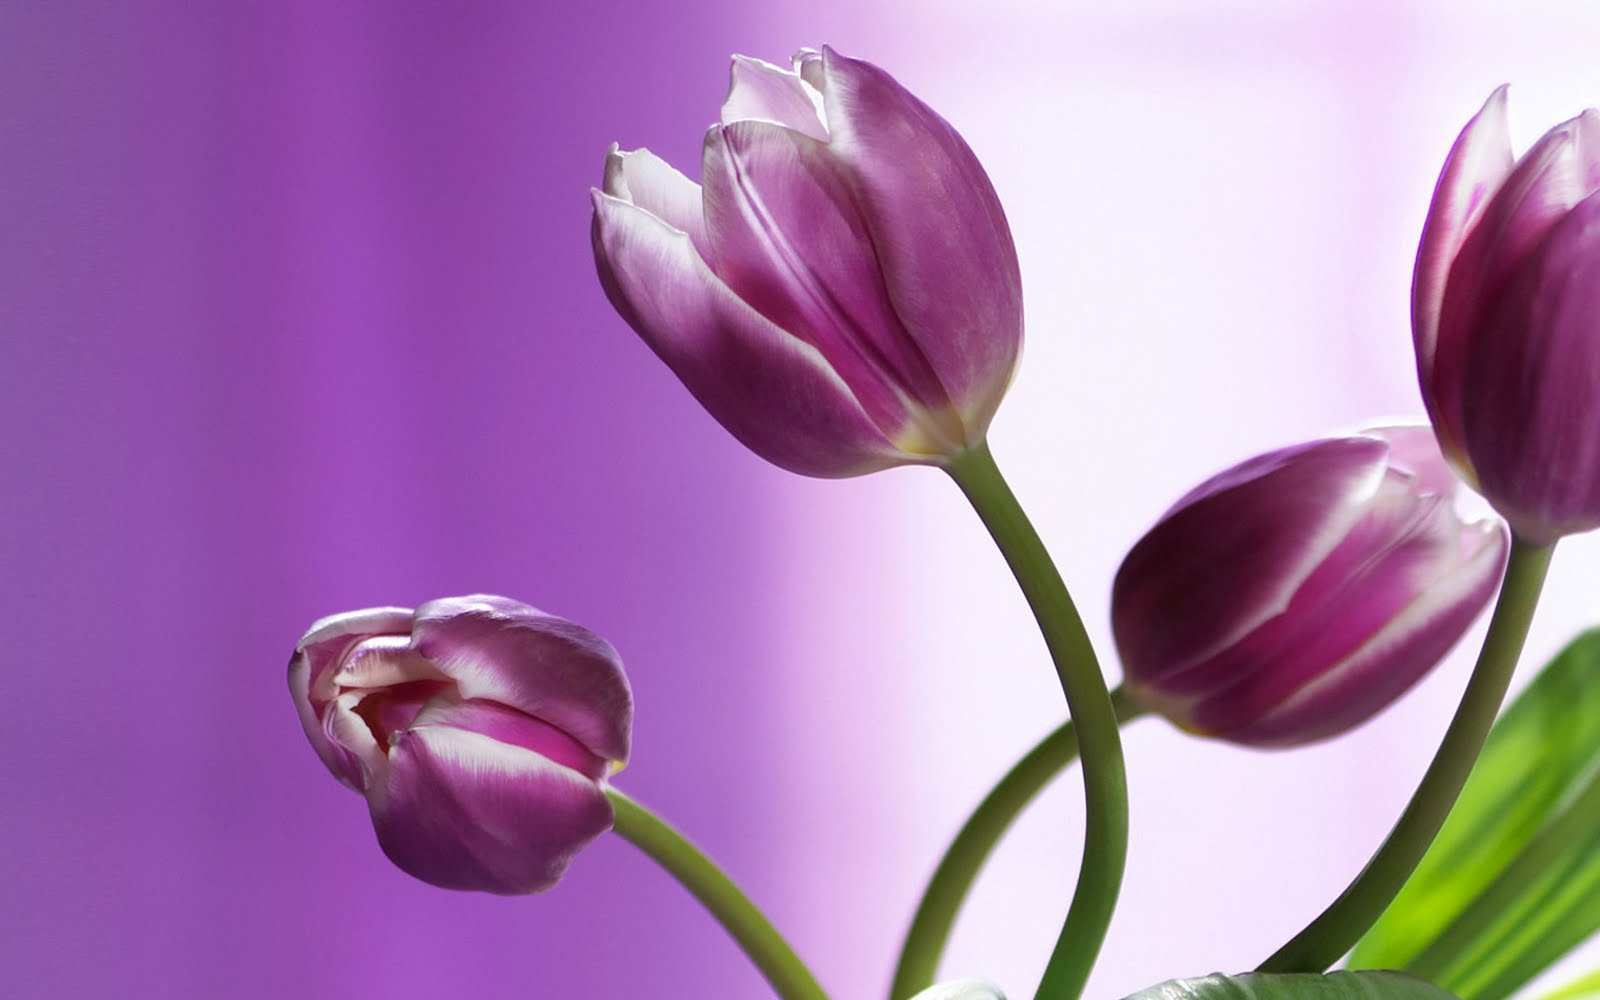 purple tulips hd wallpaper - photo #11